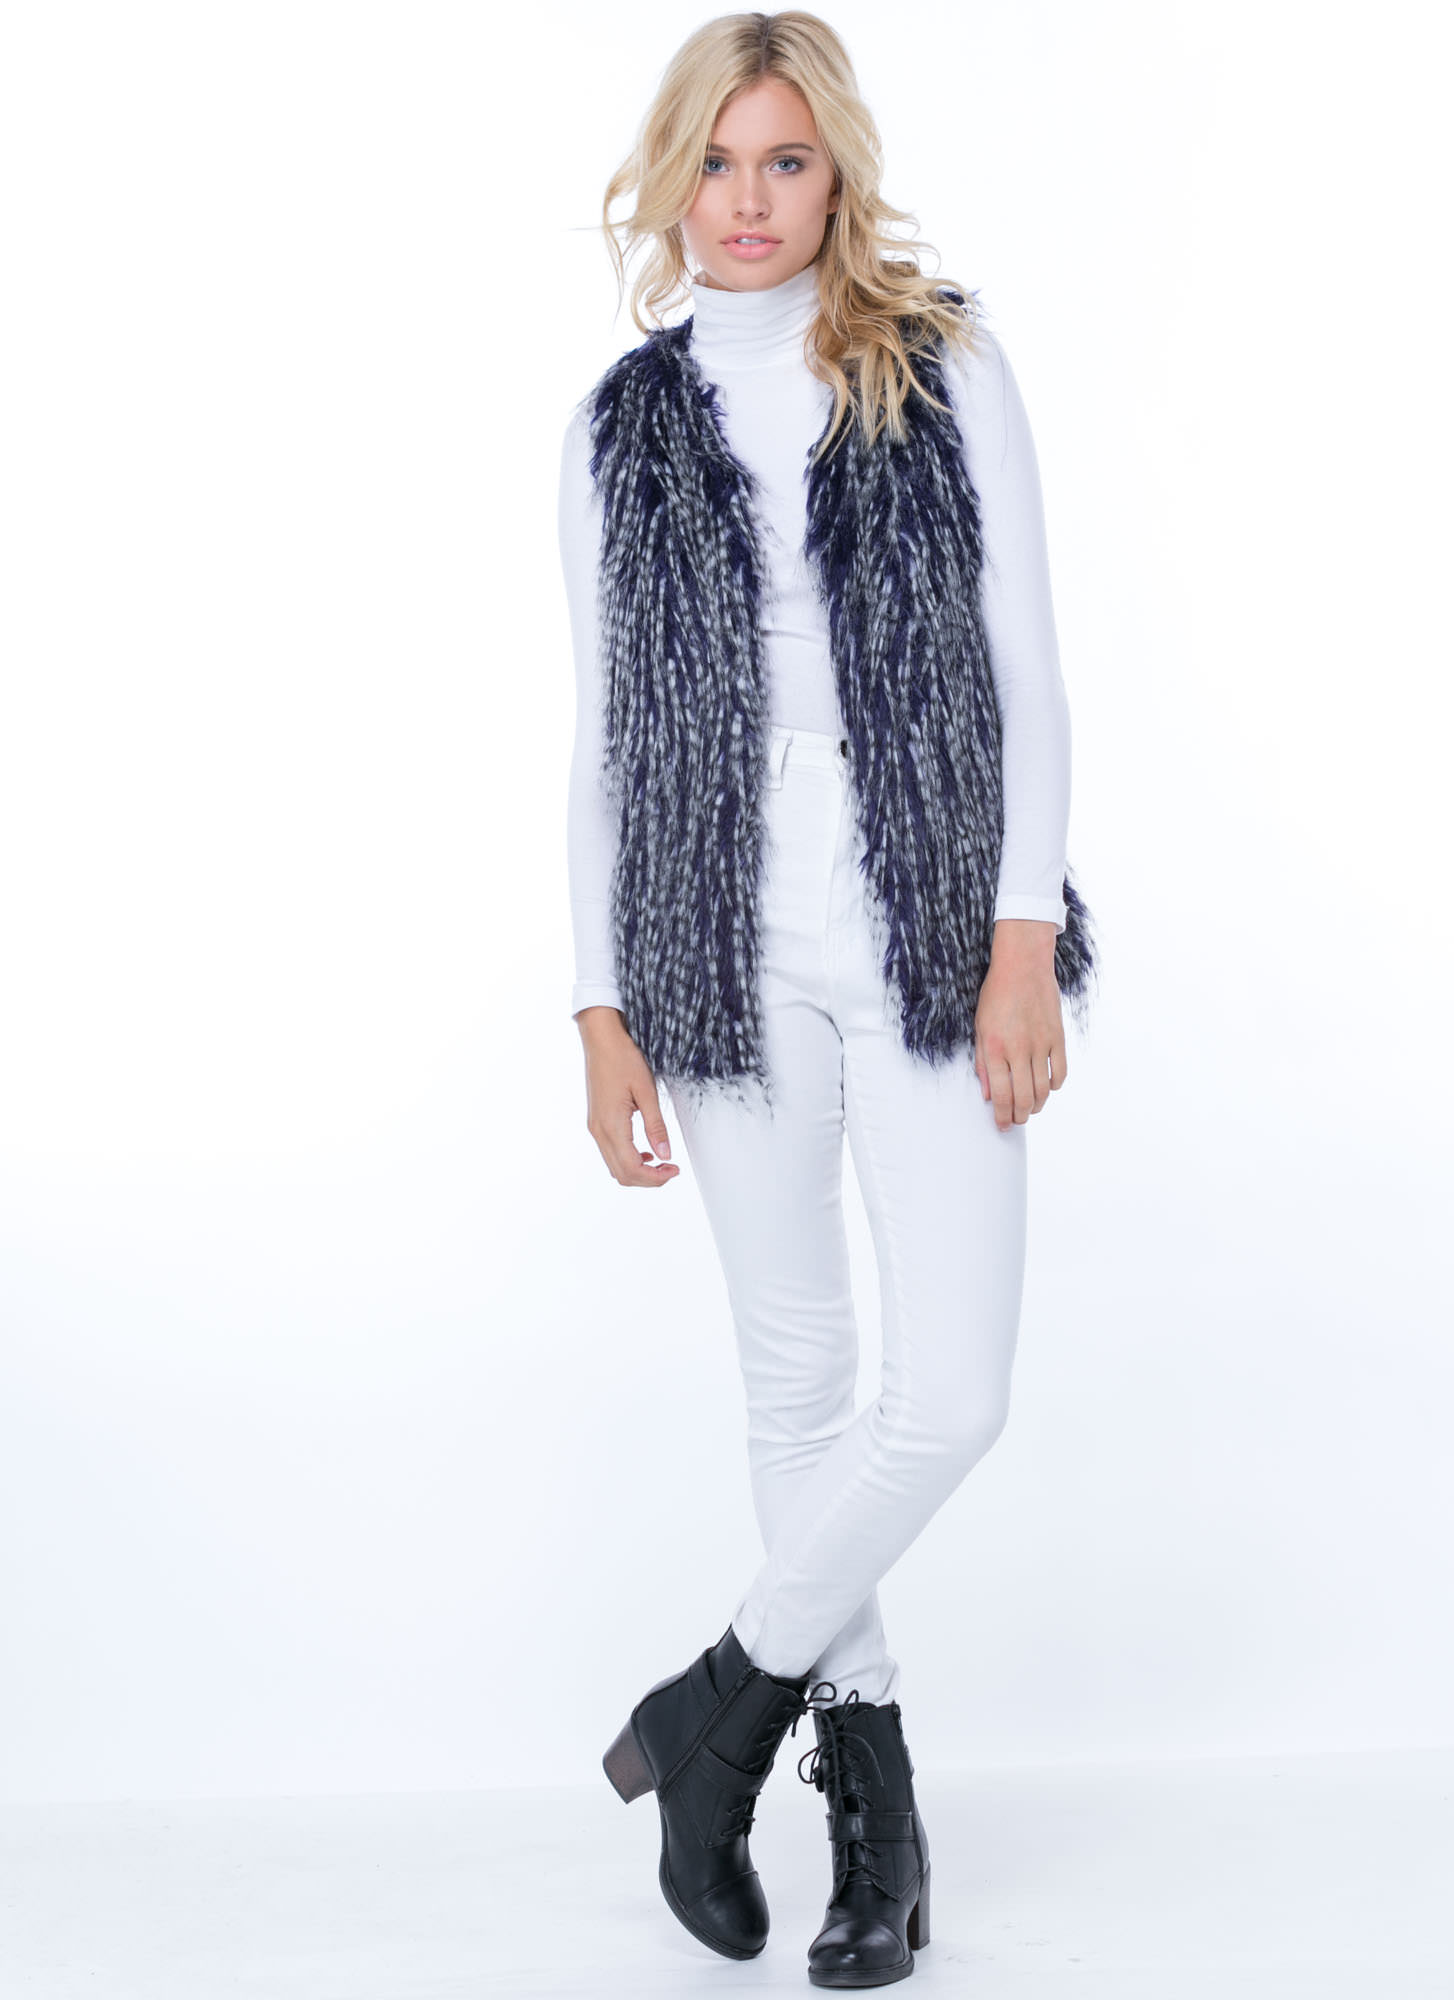 Young Women's Clothing Retailer GoJane Releases Fall Boho Collection